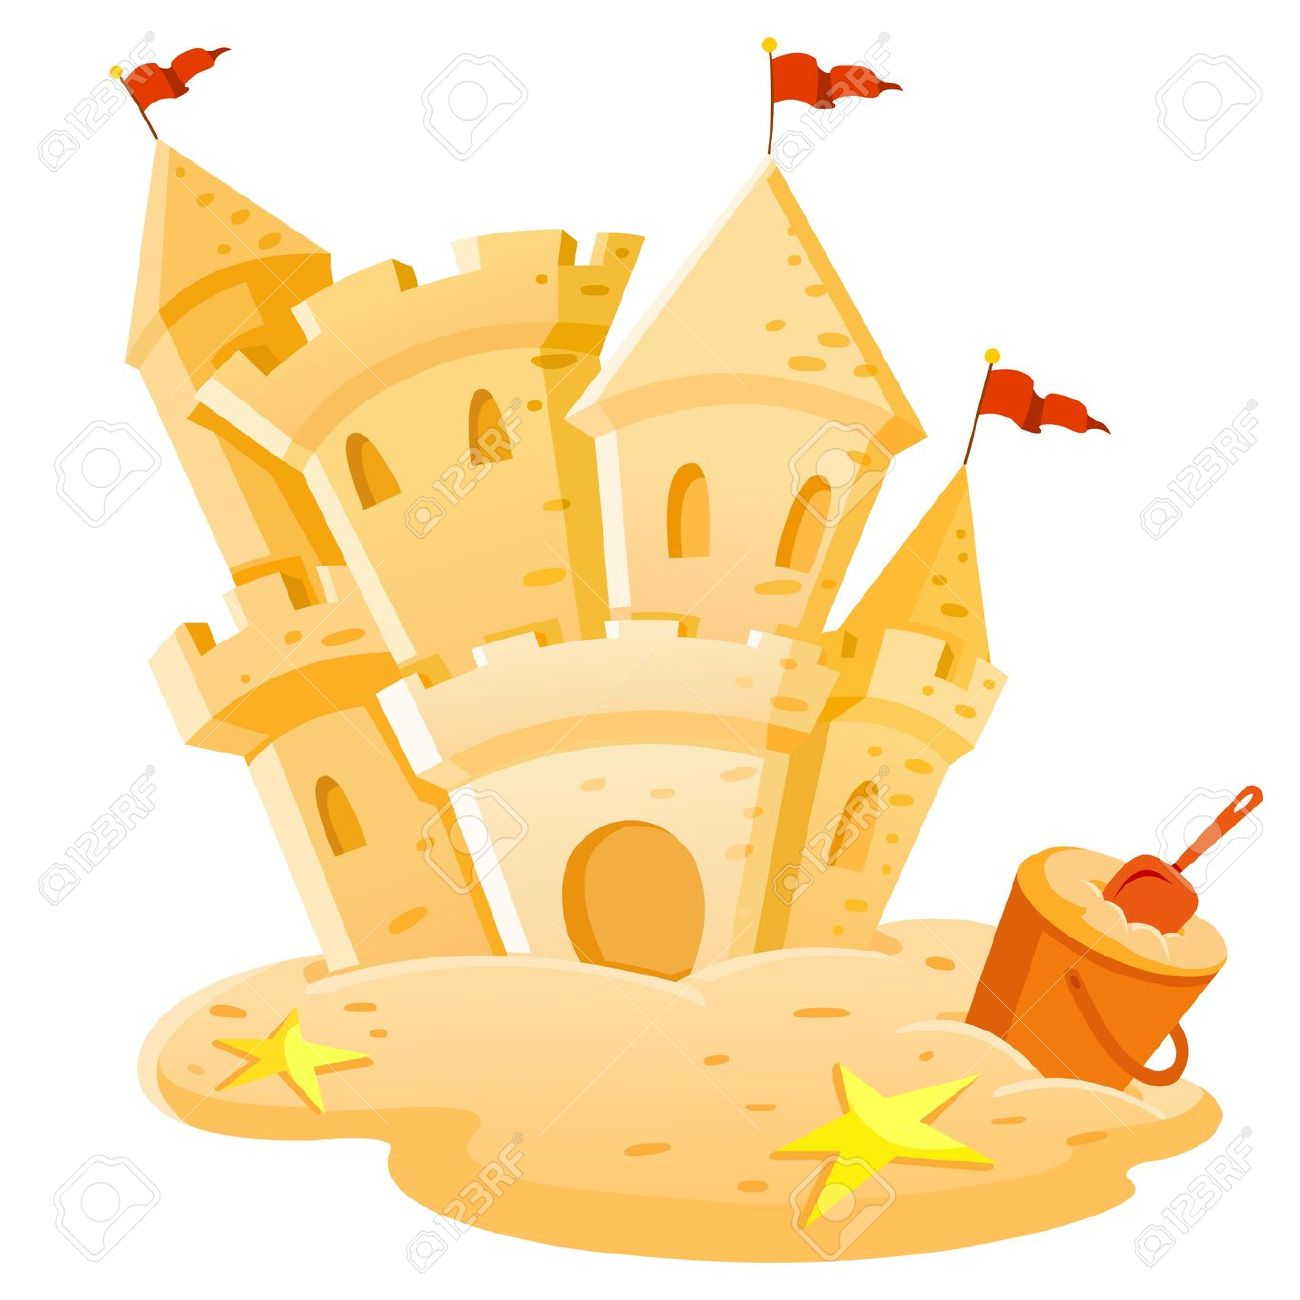 Sandcastle clipart #10, Download drawings